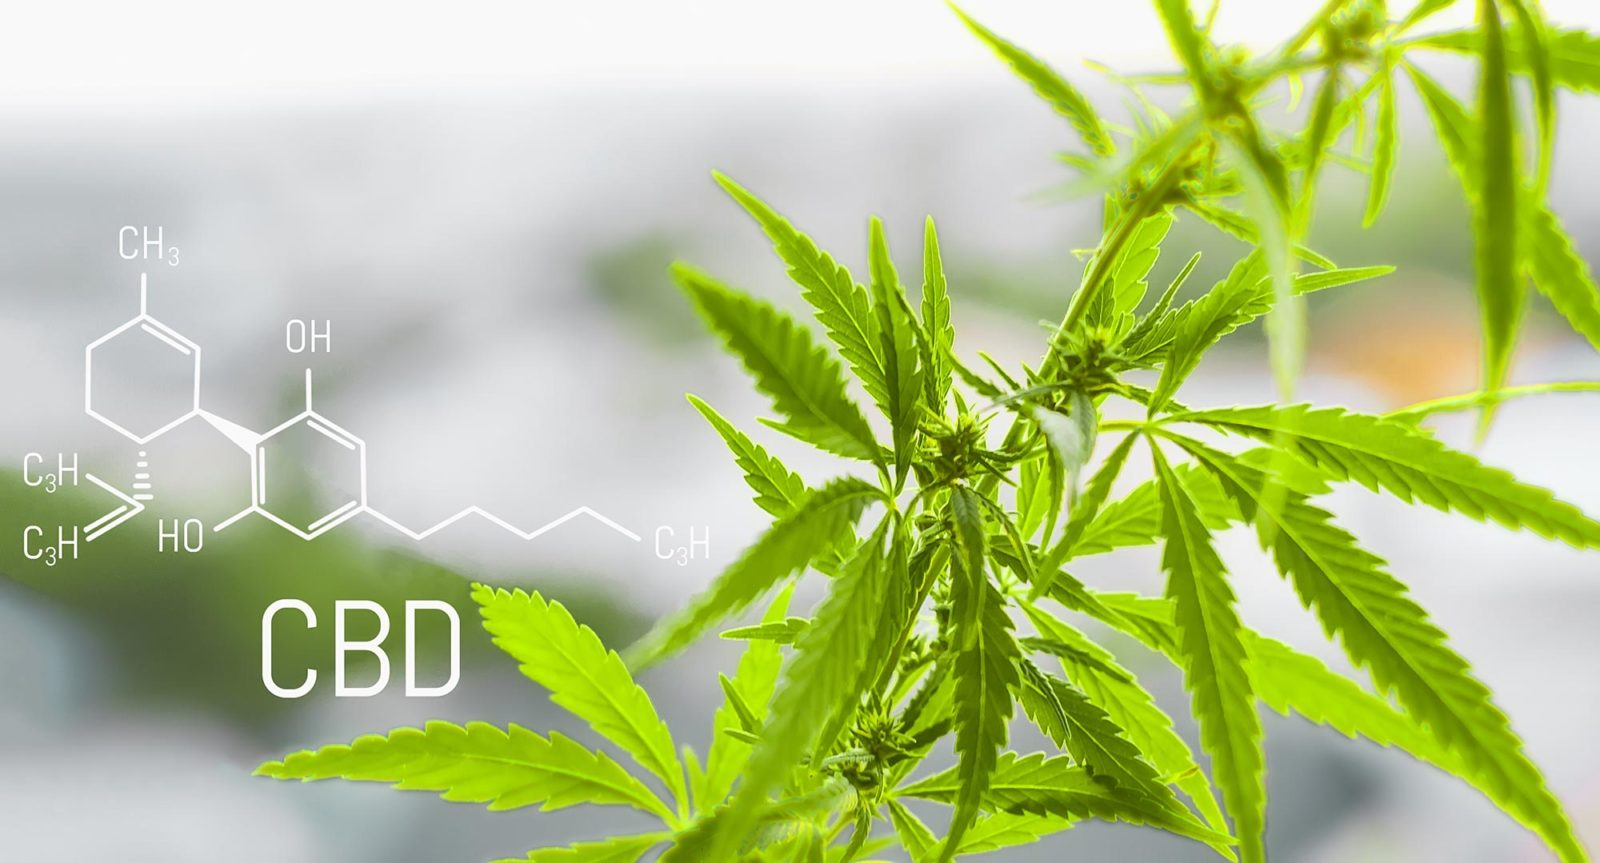 Cannabis plant and the CBD (cannabidiol) for medical use